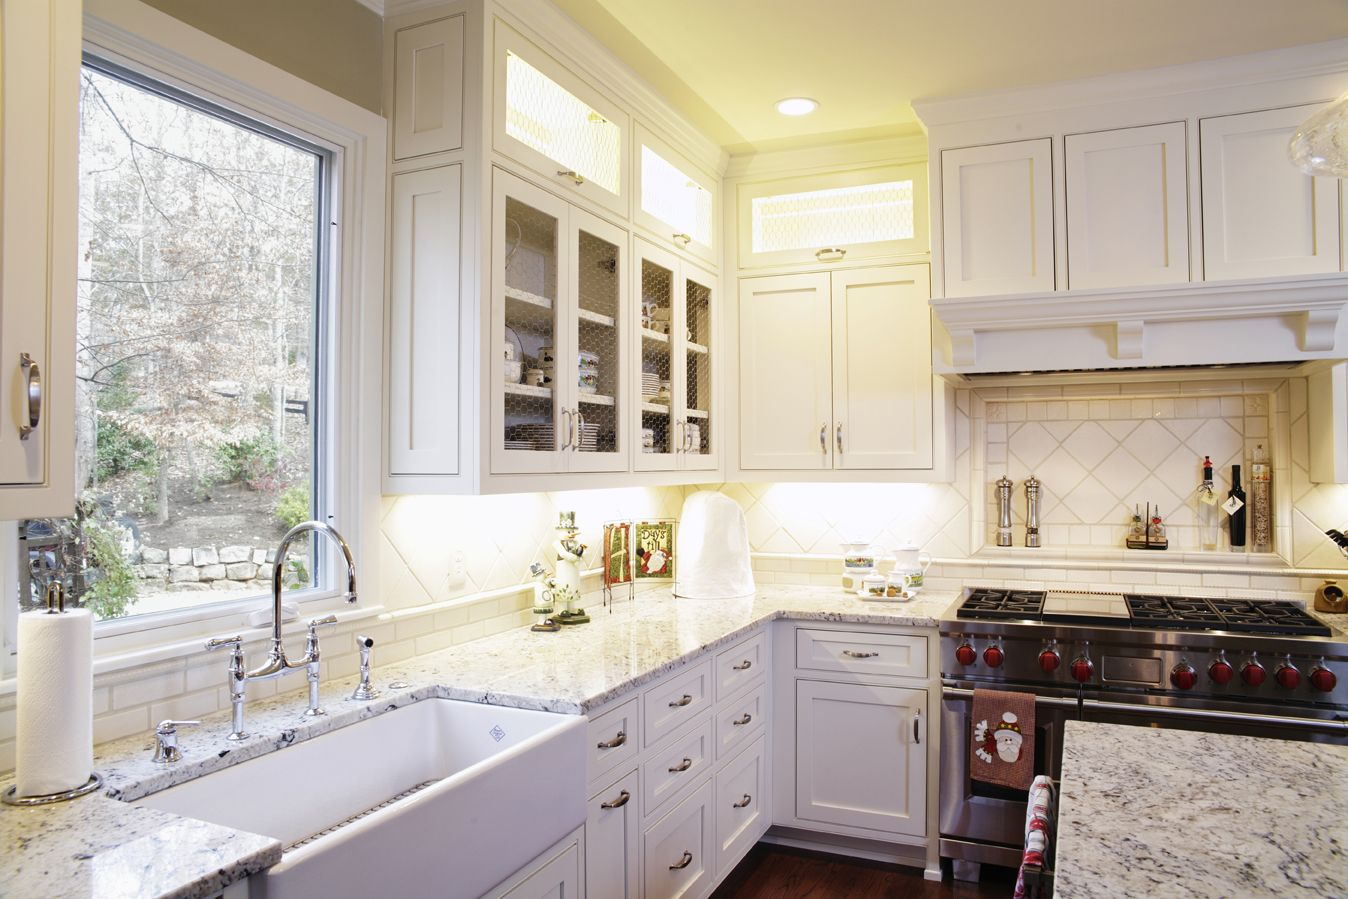 These are custom cabinets created and installed by ...